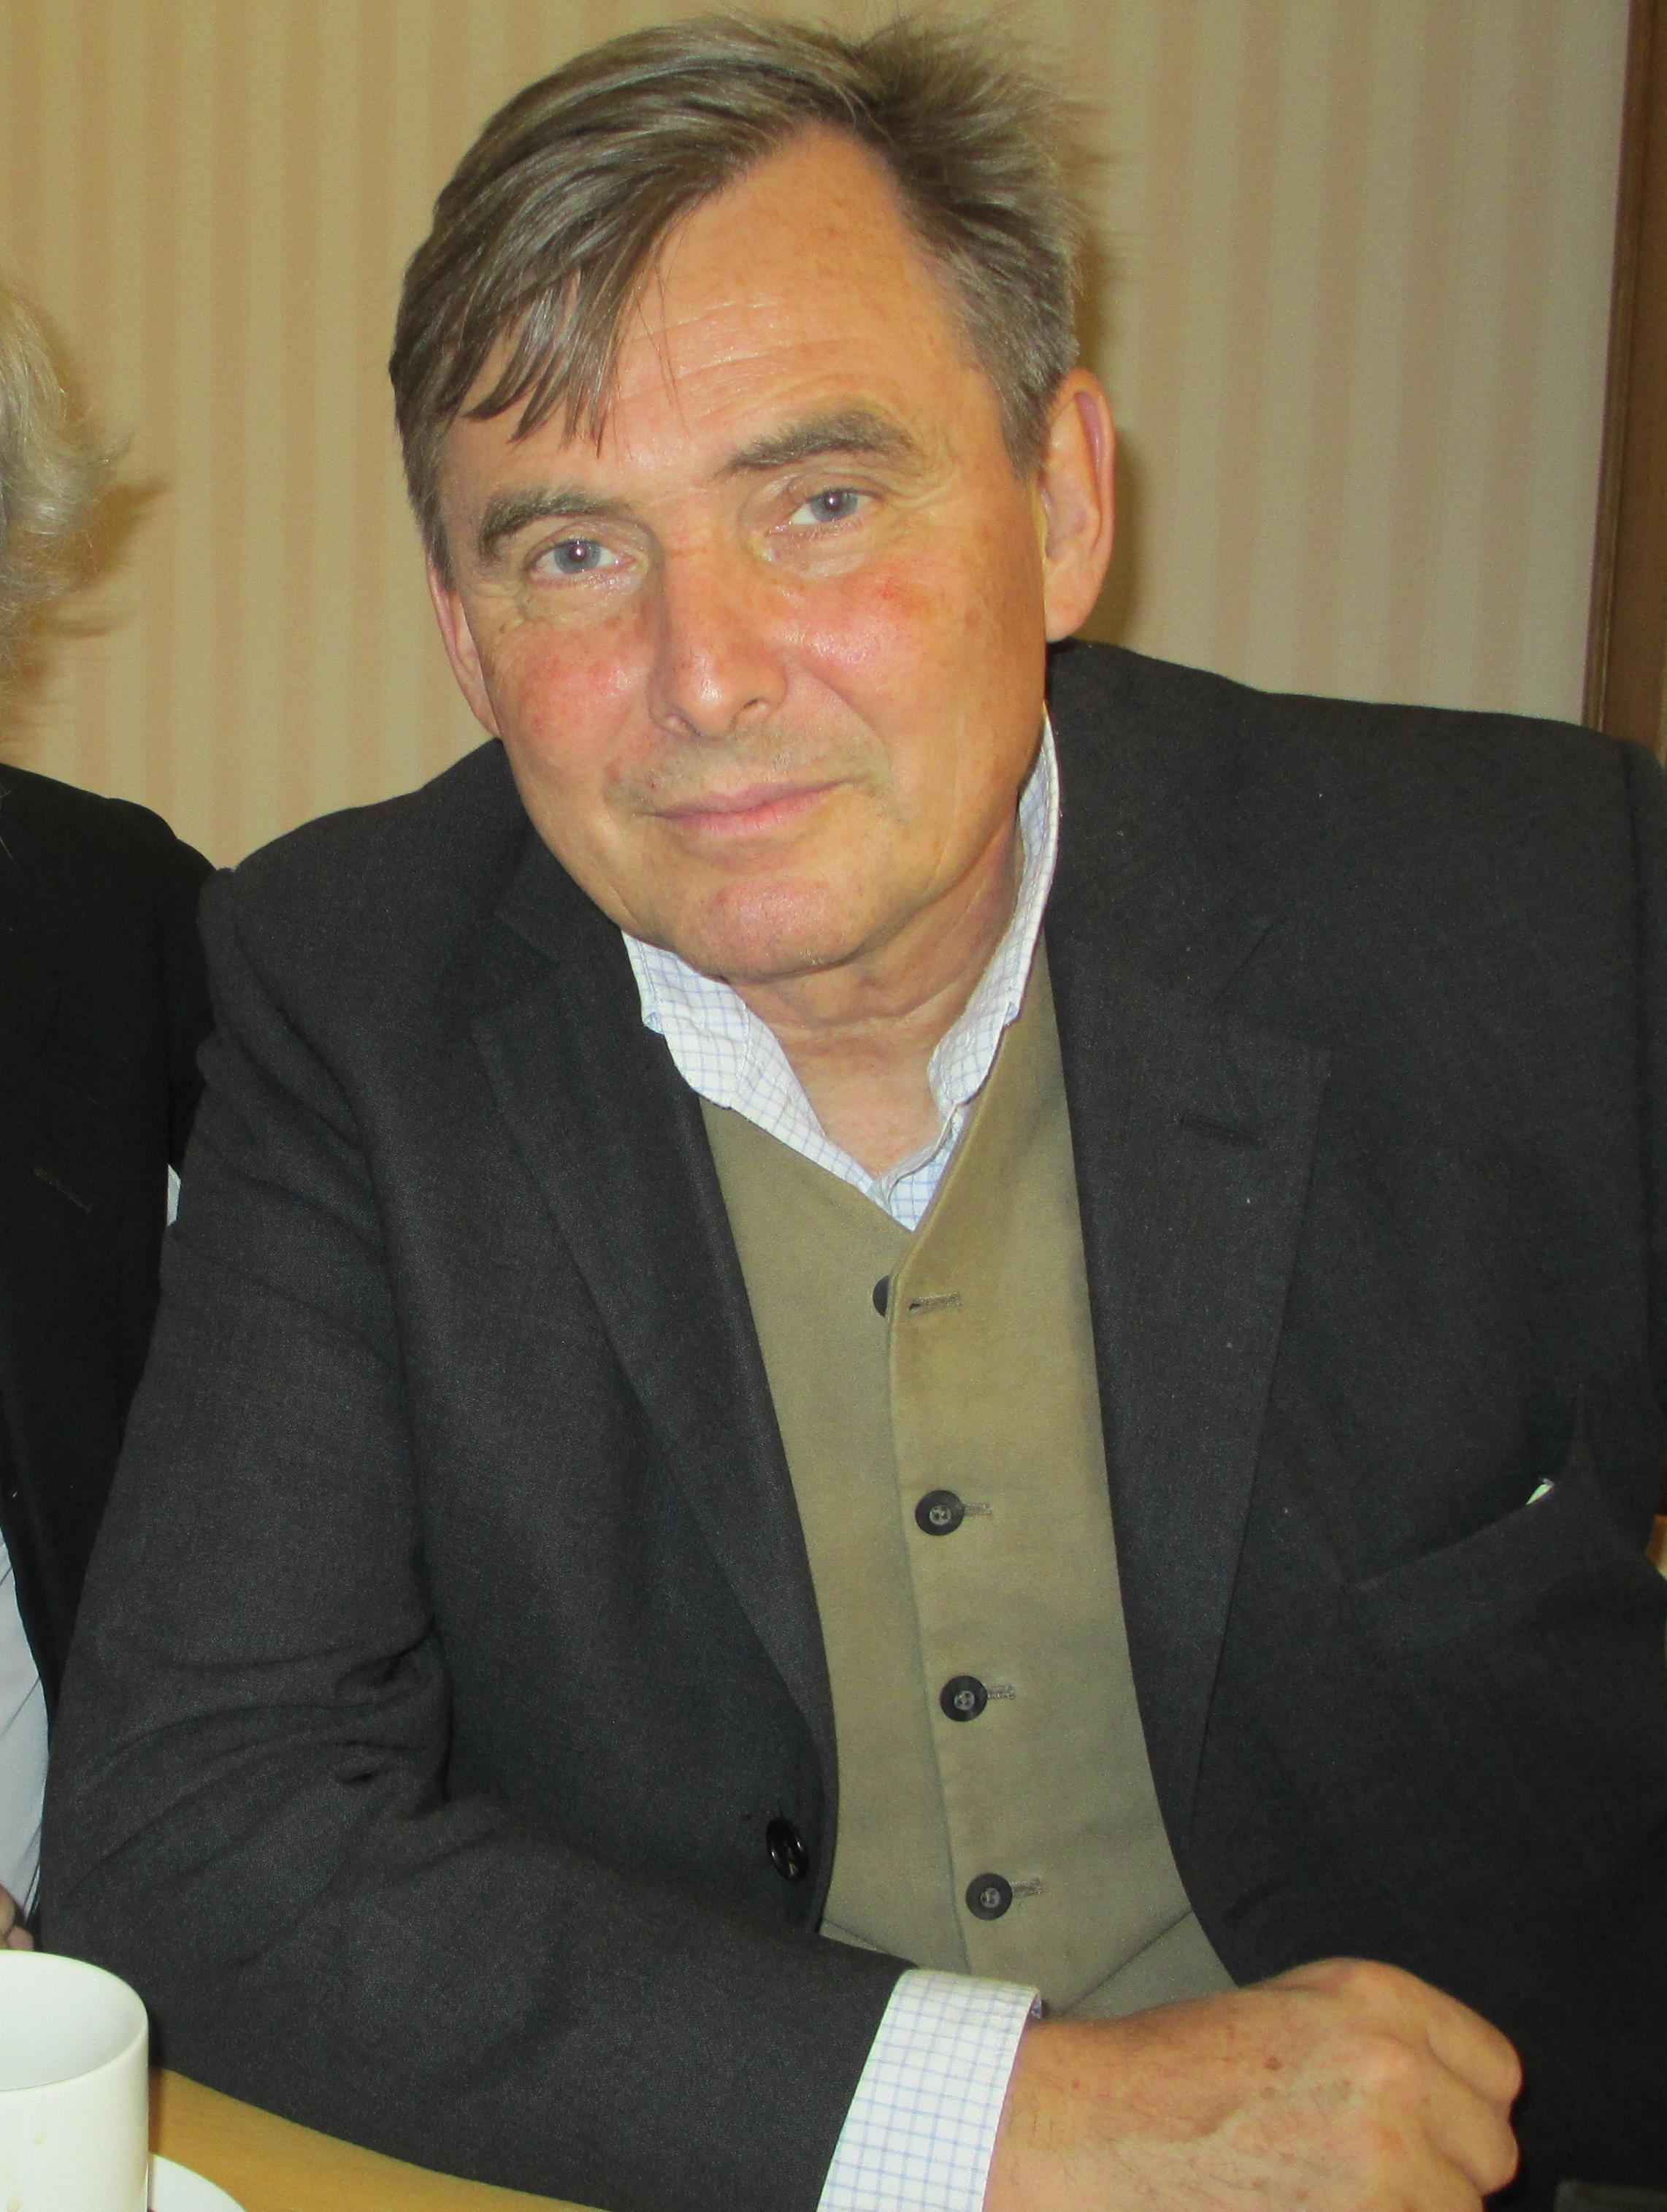 Image of Bruno Ehrs from Wikidata